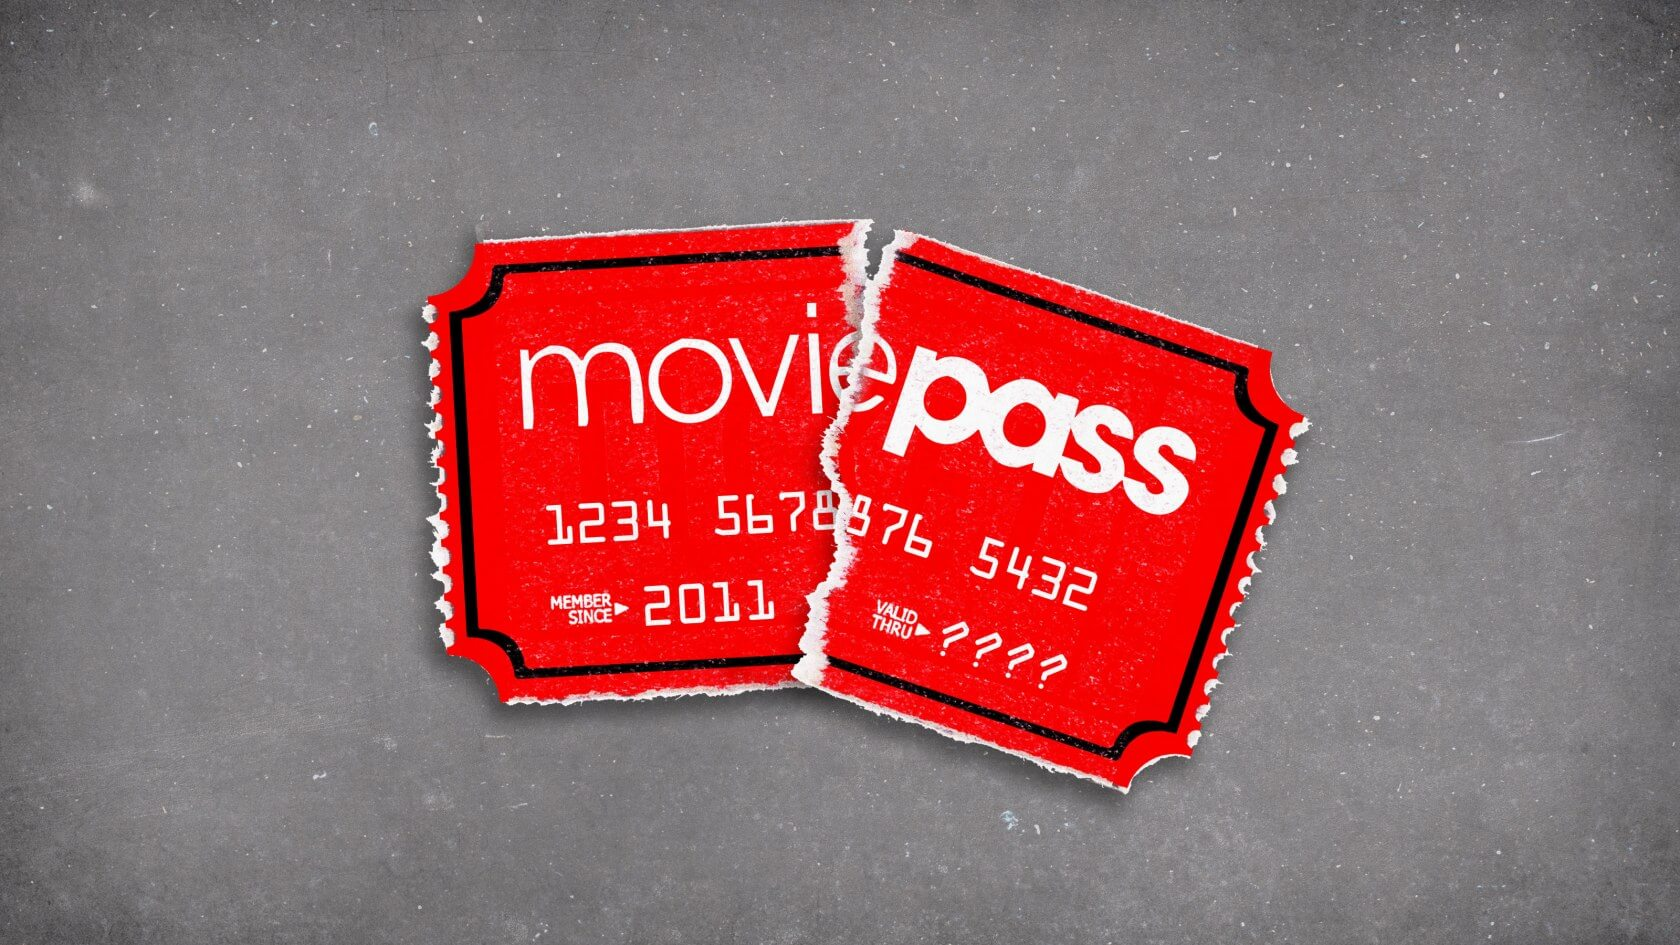 MoviePass Suspends Service To Work On App Upgrade; Plans To Recapitalize